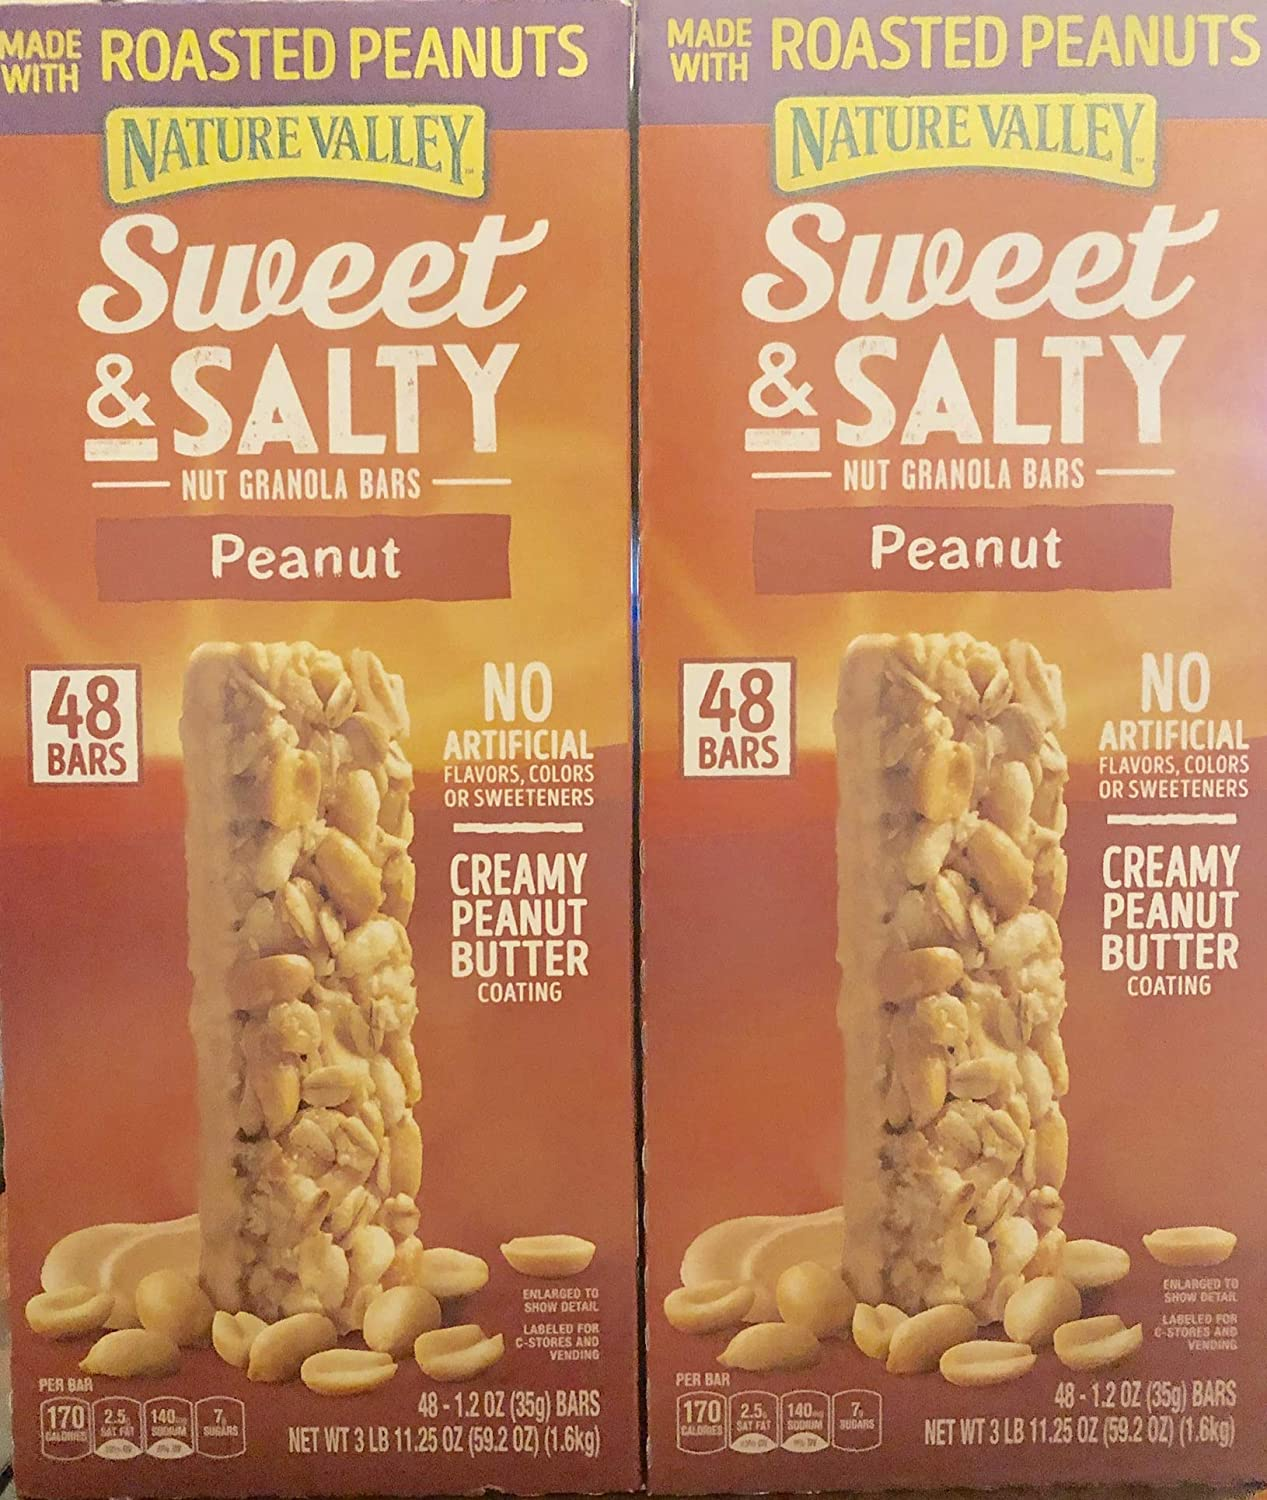 Nature Valley Sweet & Salty Nut Granola Peanut Bars( 2 PACK OF 48ct 1.2oz IN Each Box )